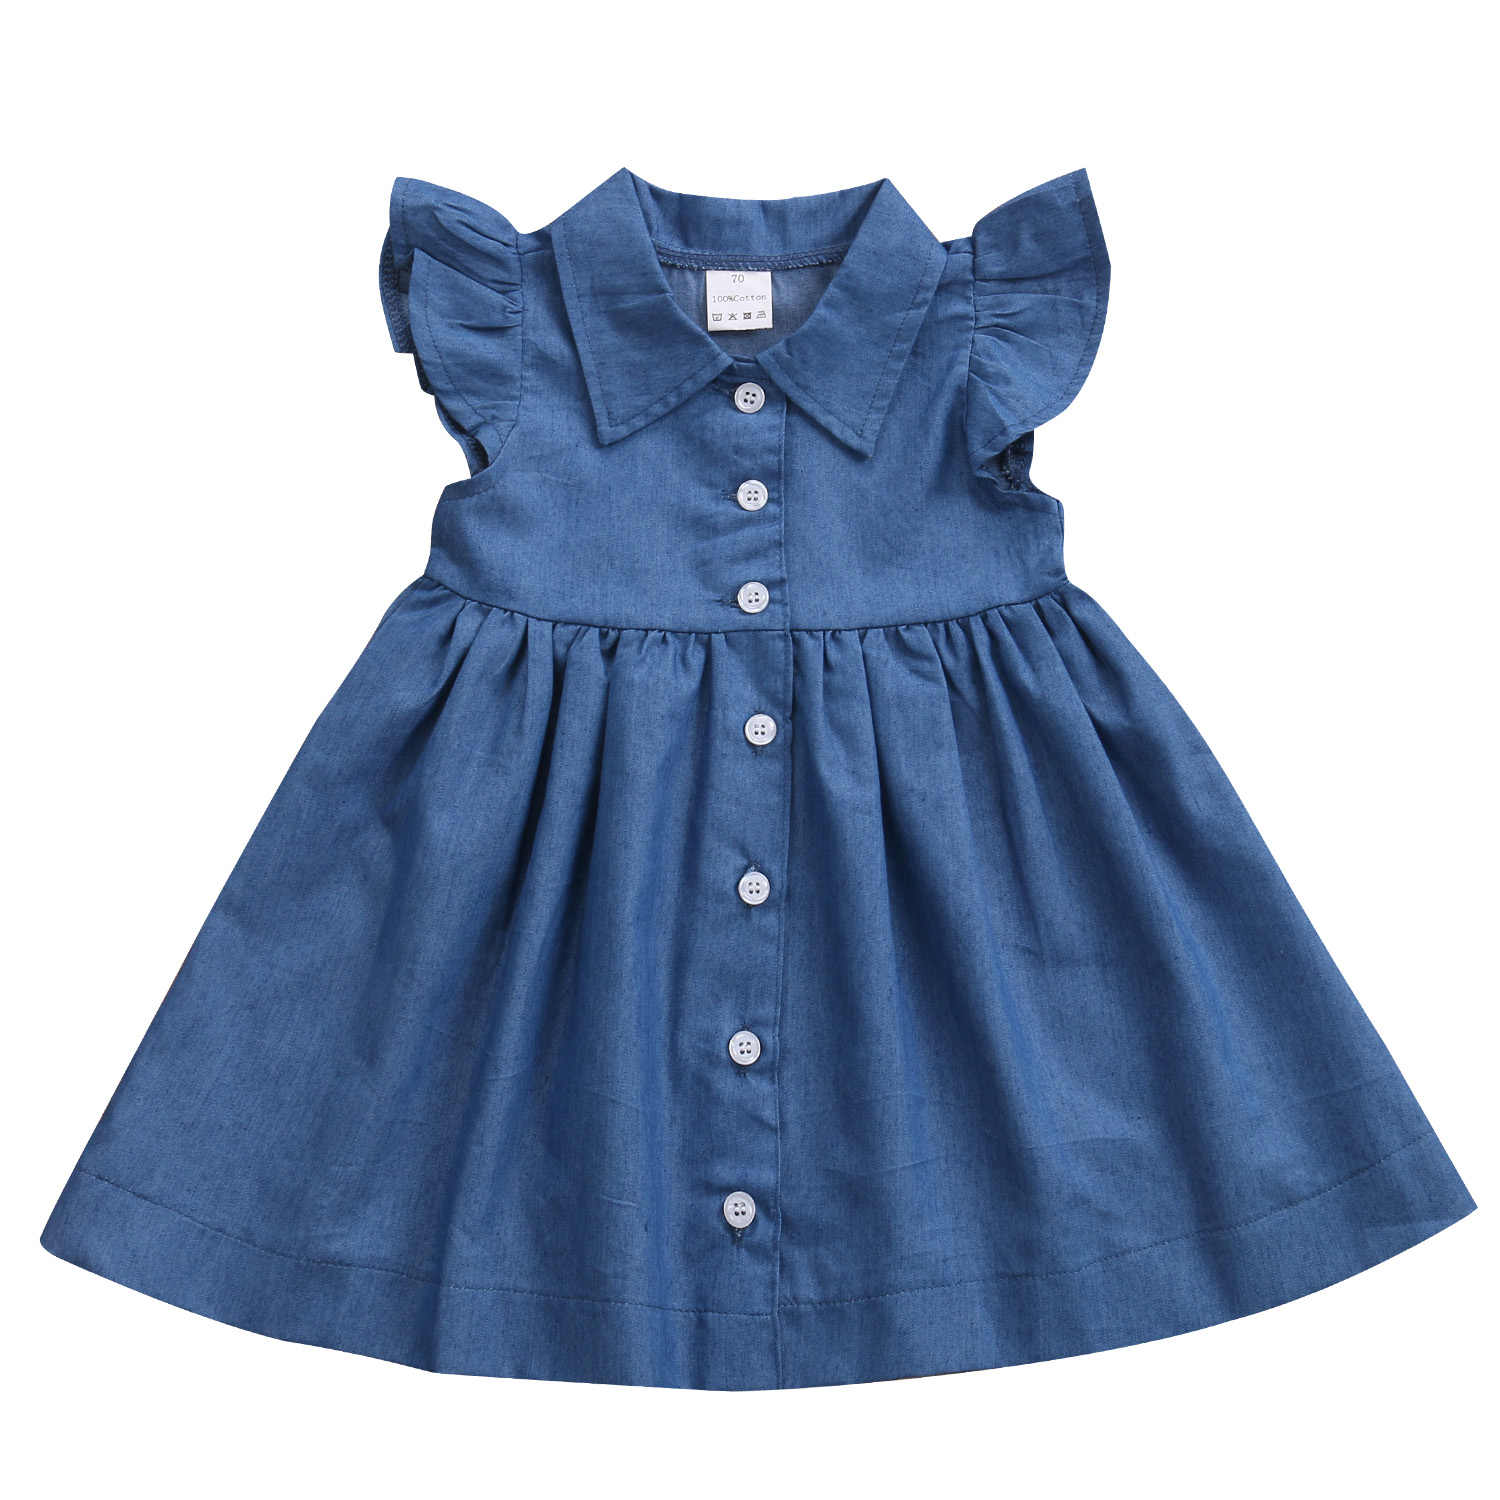 69bd52ab7d9 Detail Feedback Questions about baby girl denim dress Toddler Baby Kids  Girls Denim Princess Summer Sundress Party casual fashion Dress Clothes baby  girl ...